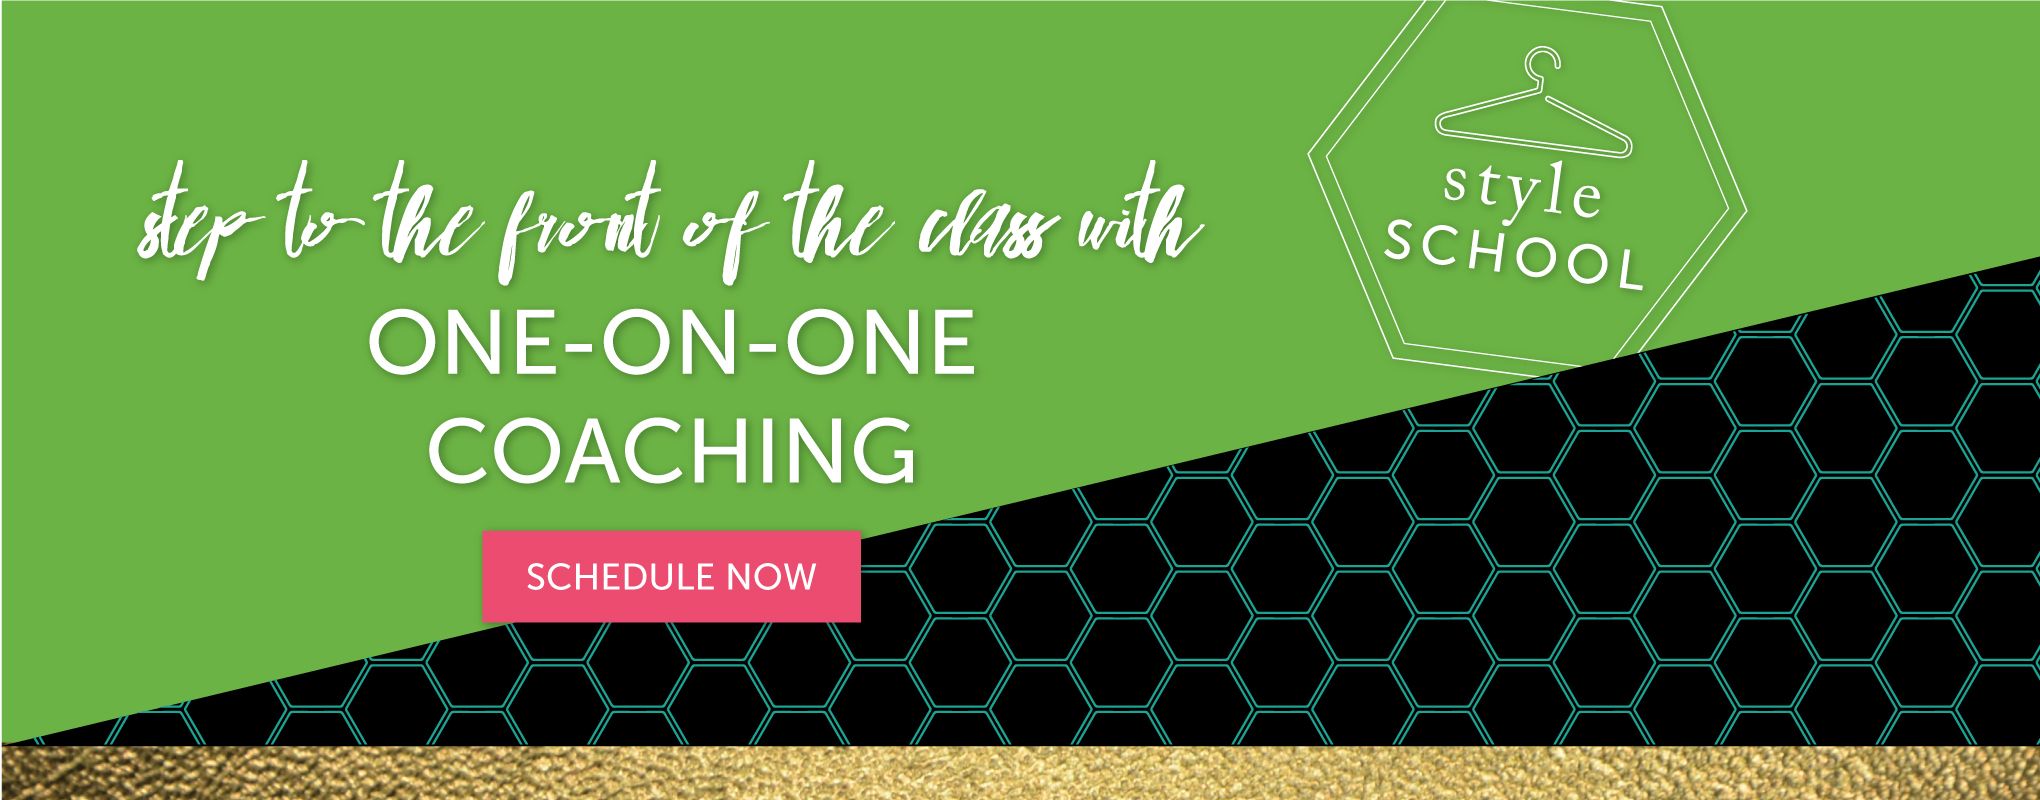 Schedule One-on-One Coaching